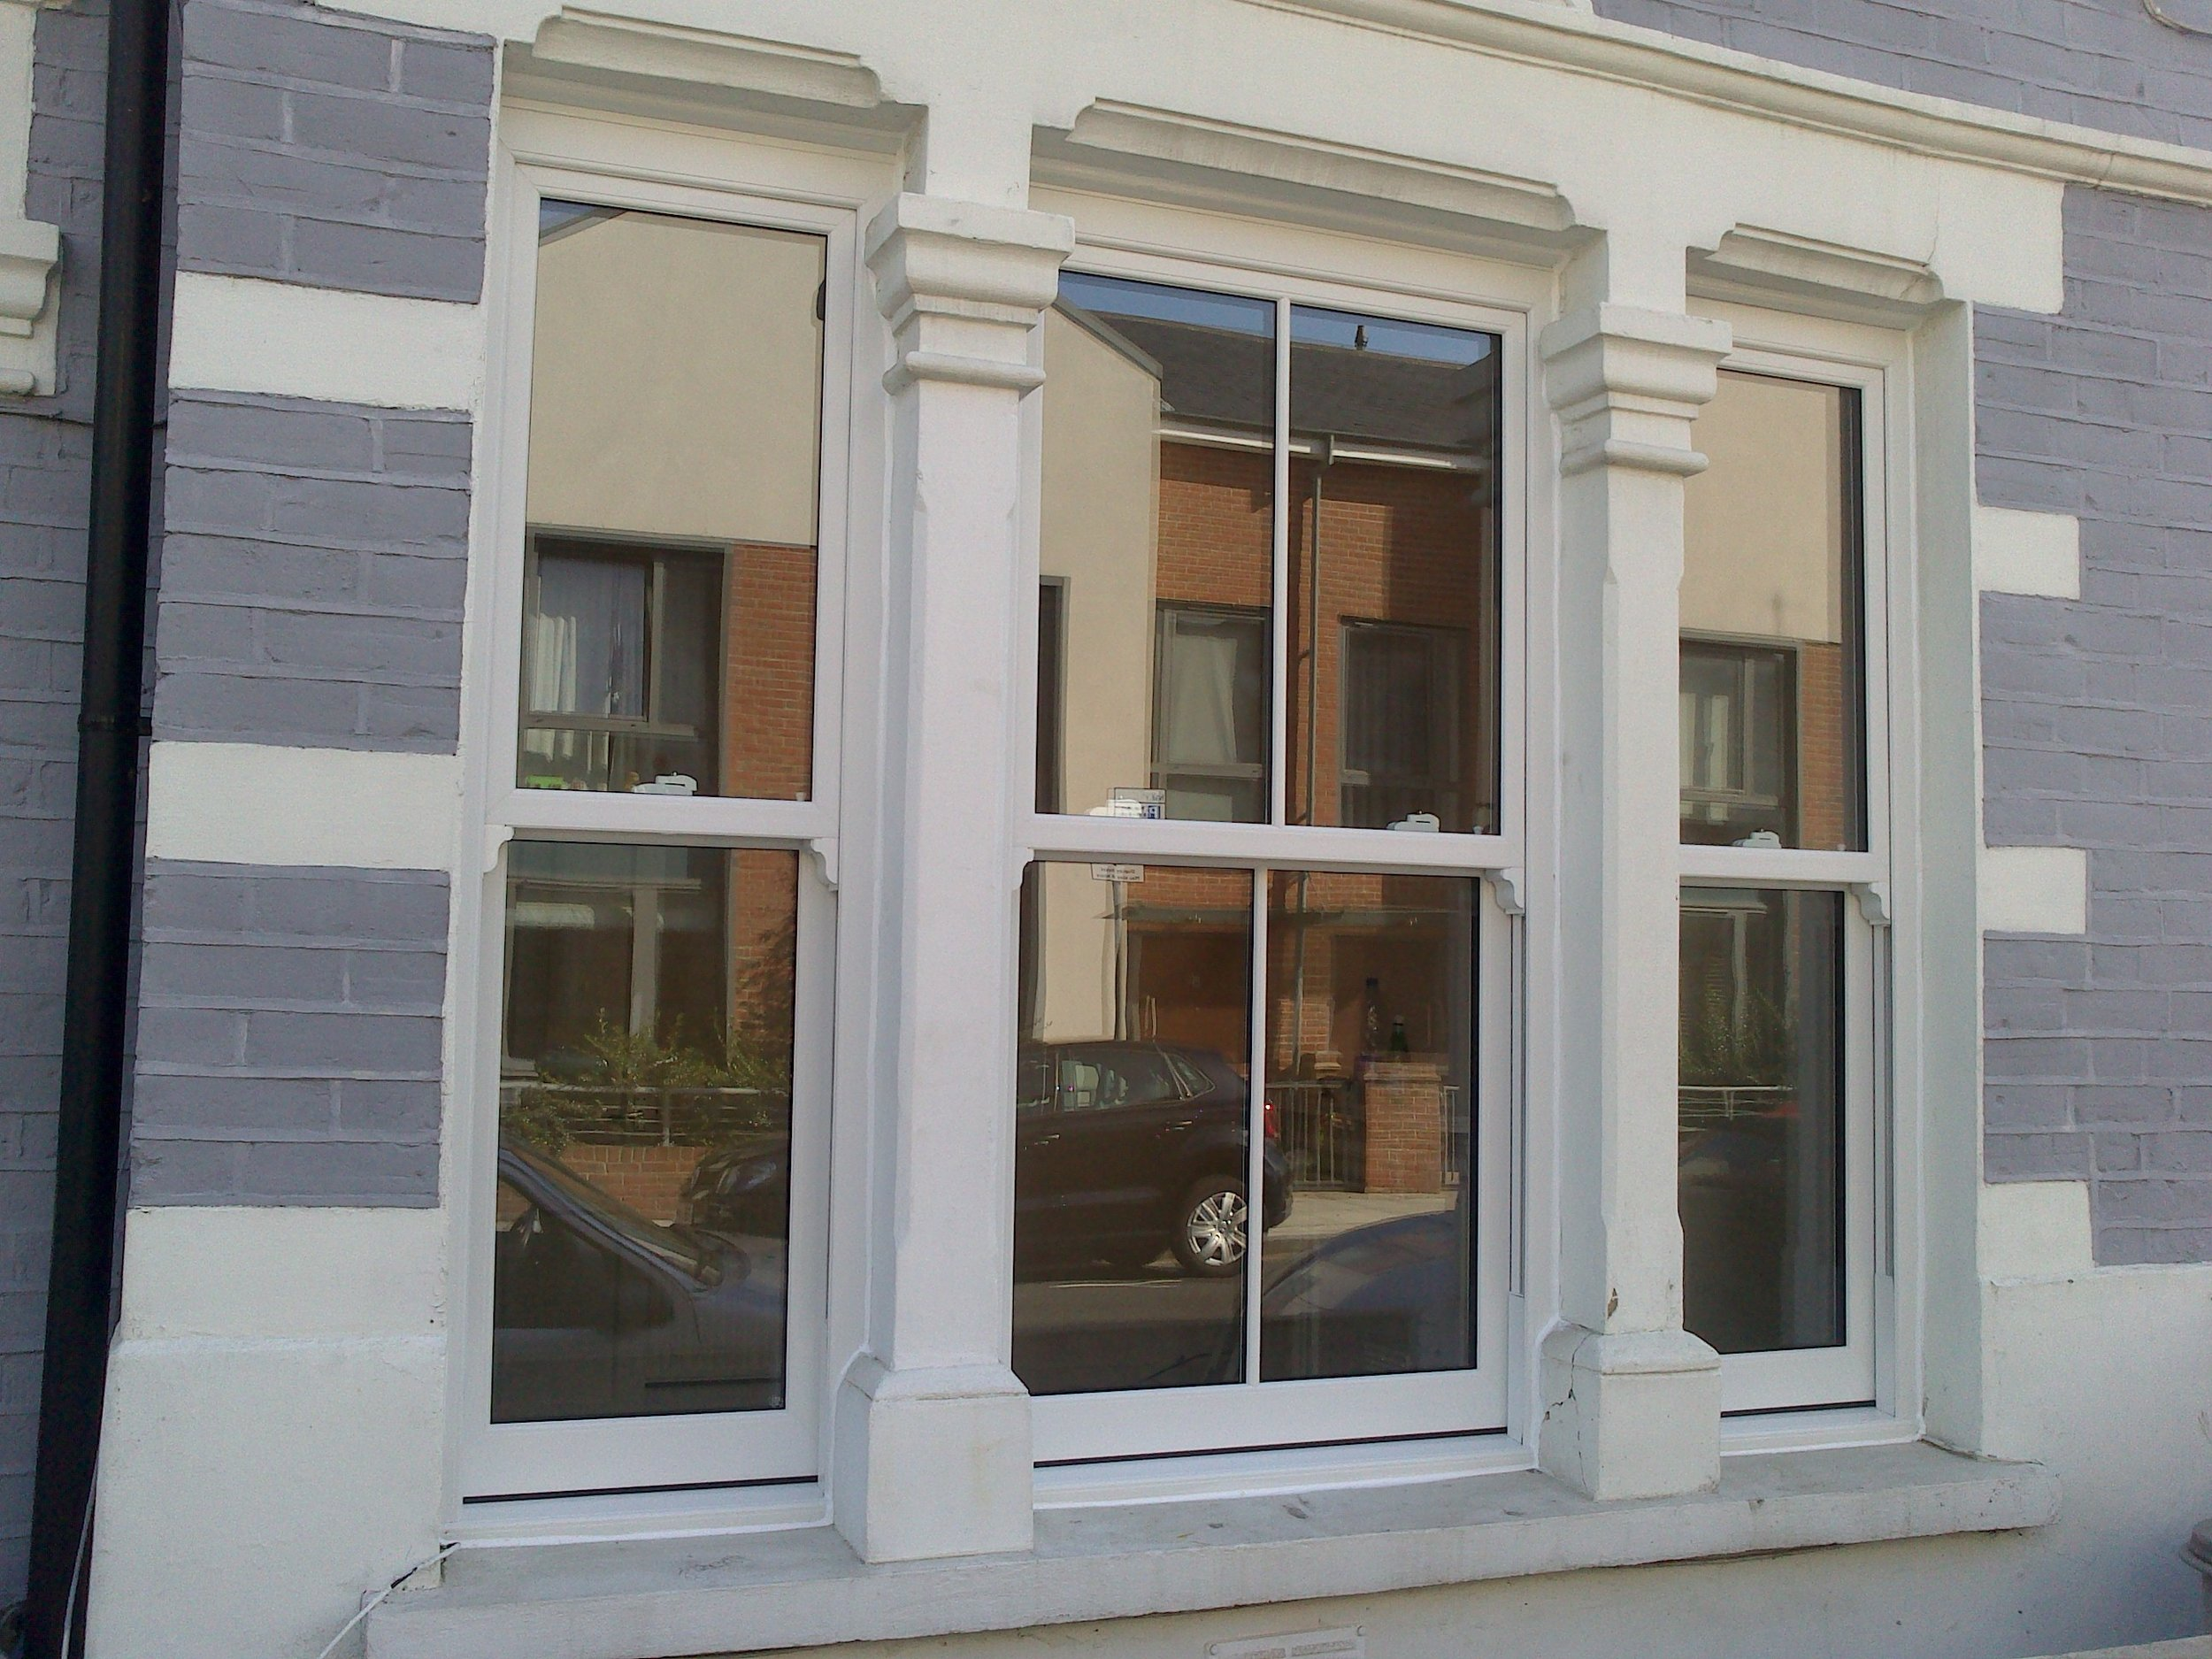 Sash Vertical Sliding Windows - Traditional timber sash windows have great character and blend perfectly with period buildings, yet they pose many functionality issues in terms of security, energy efficiency and maintenance.Our bespoke, UPVC sash windows provide the perfect solution to this problem by combining traditional design with modern window technology.For more information please follow the link below or call our showroom team who will be more than happy to discuss your enquiry: 020 8361 0128.